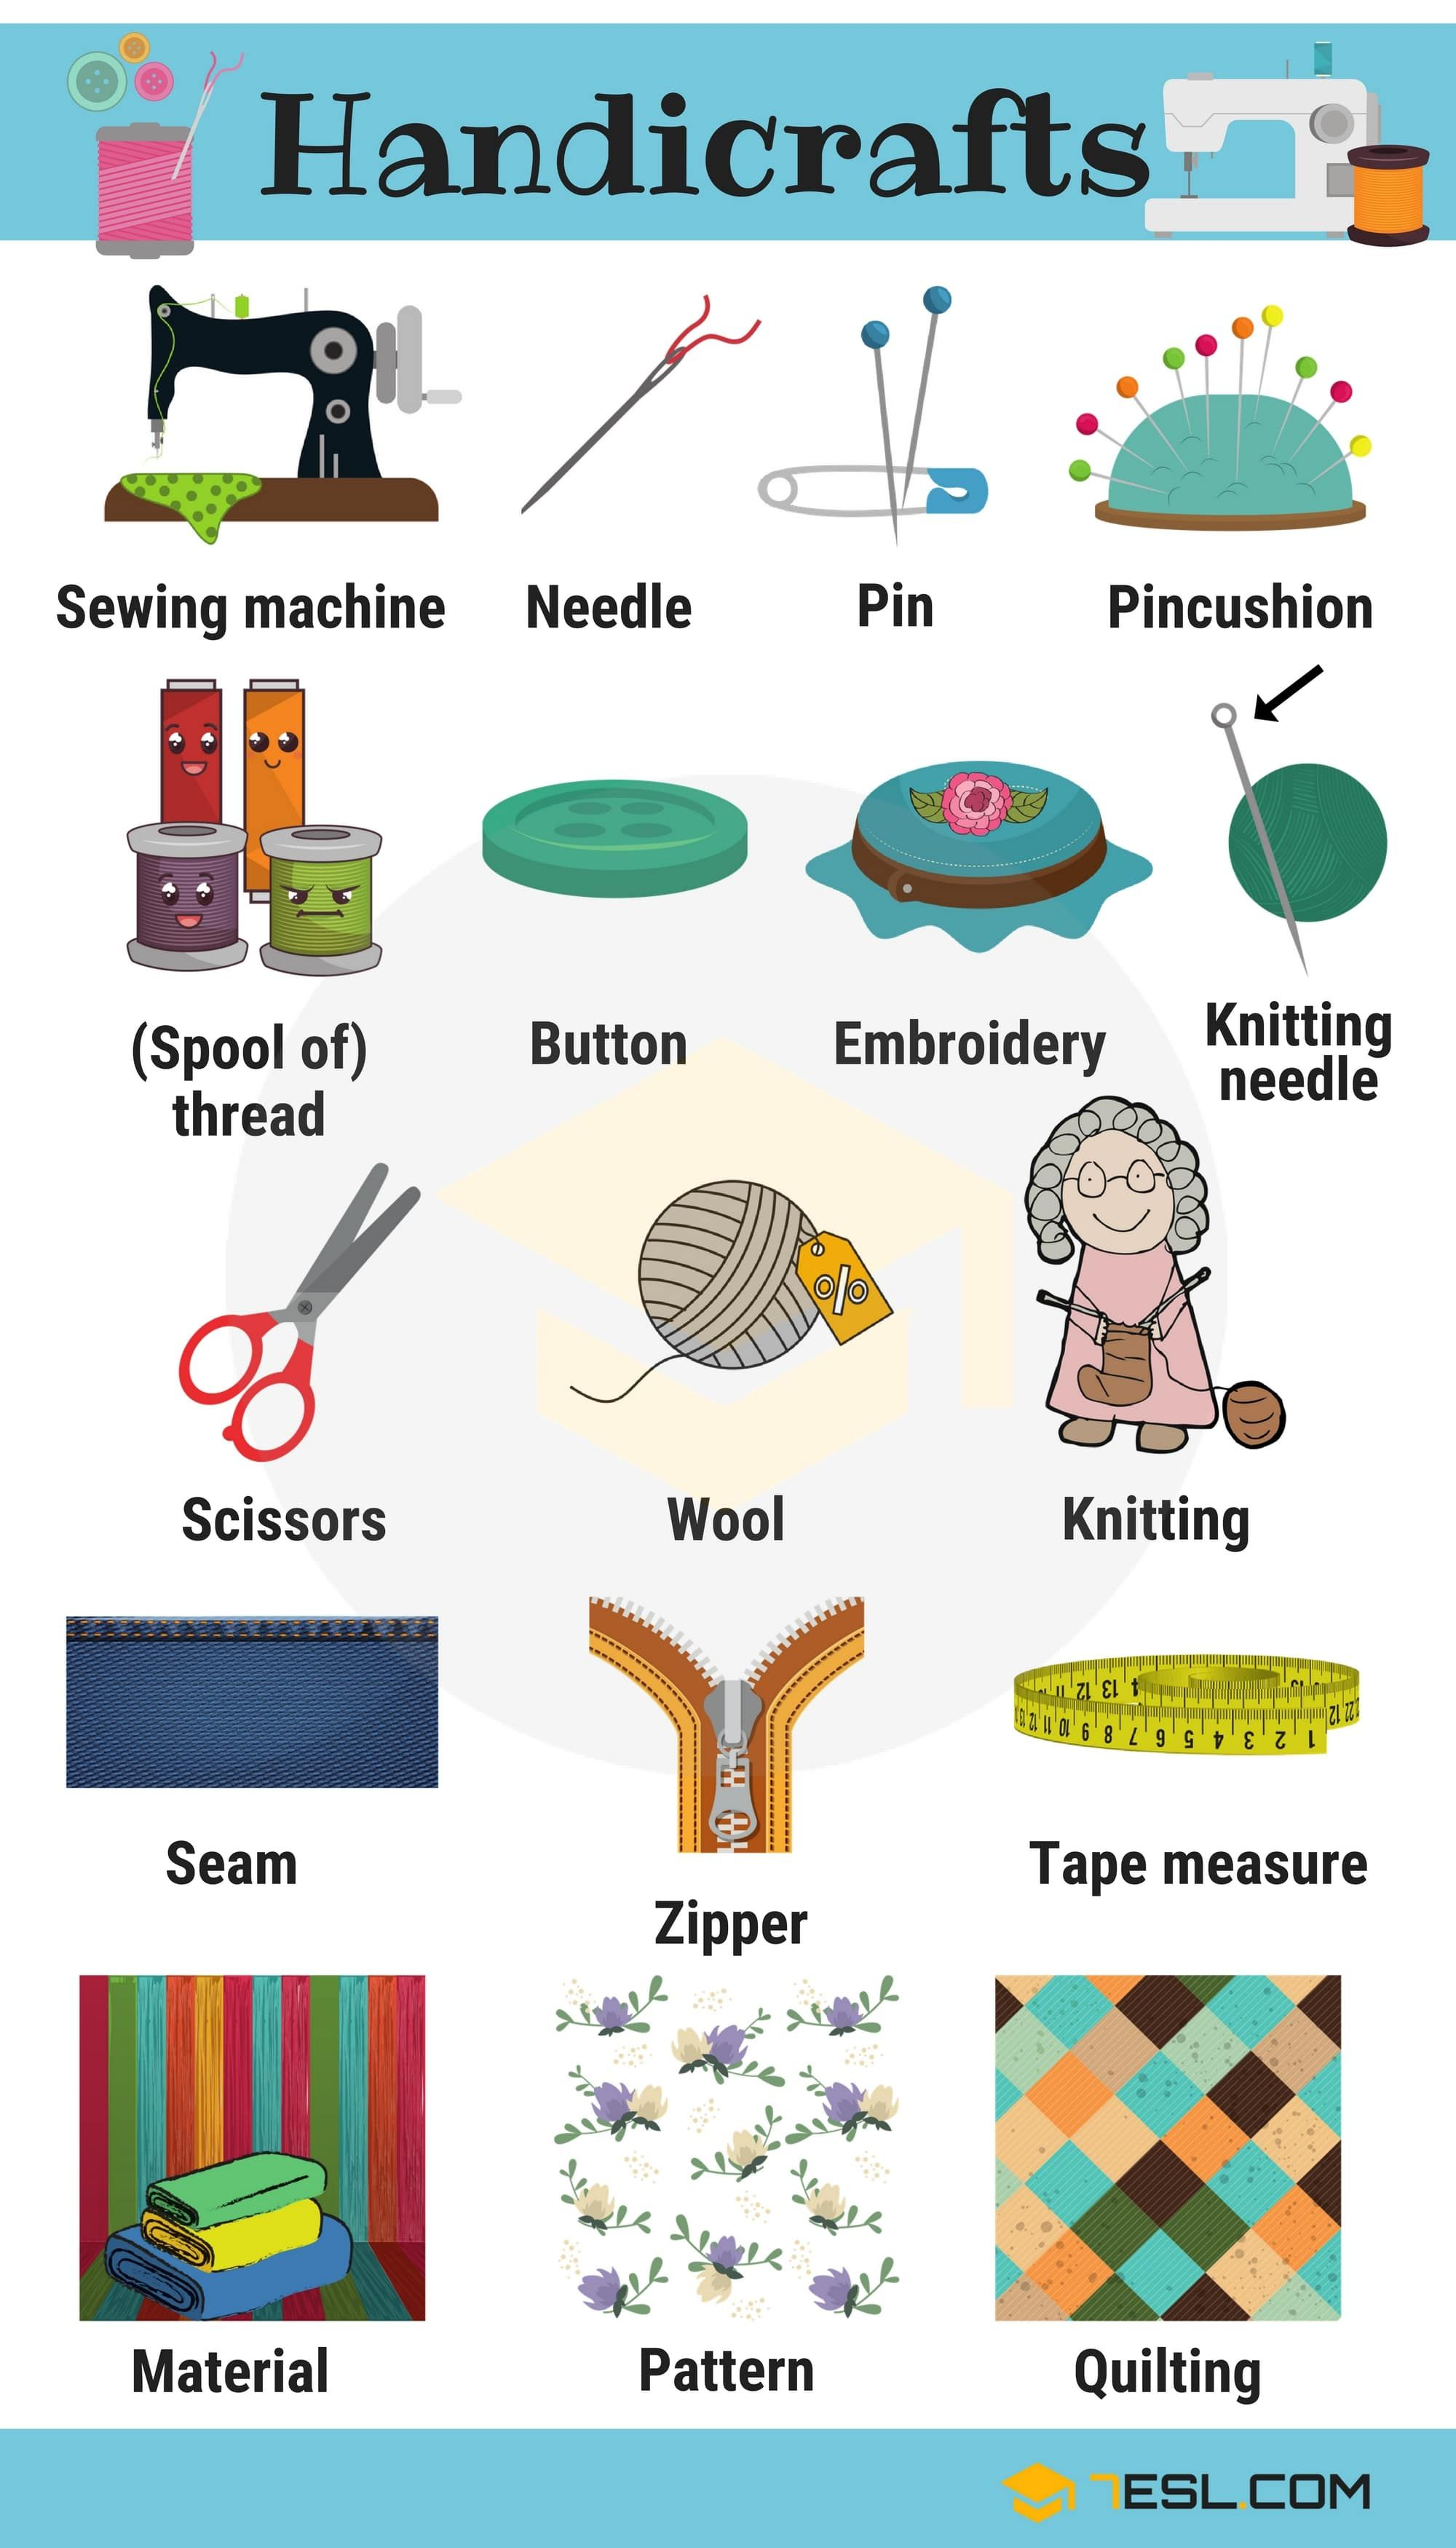 Learn Handicraft Vocabulary With Pictures Enska Pinterest